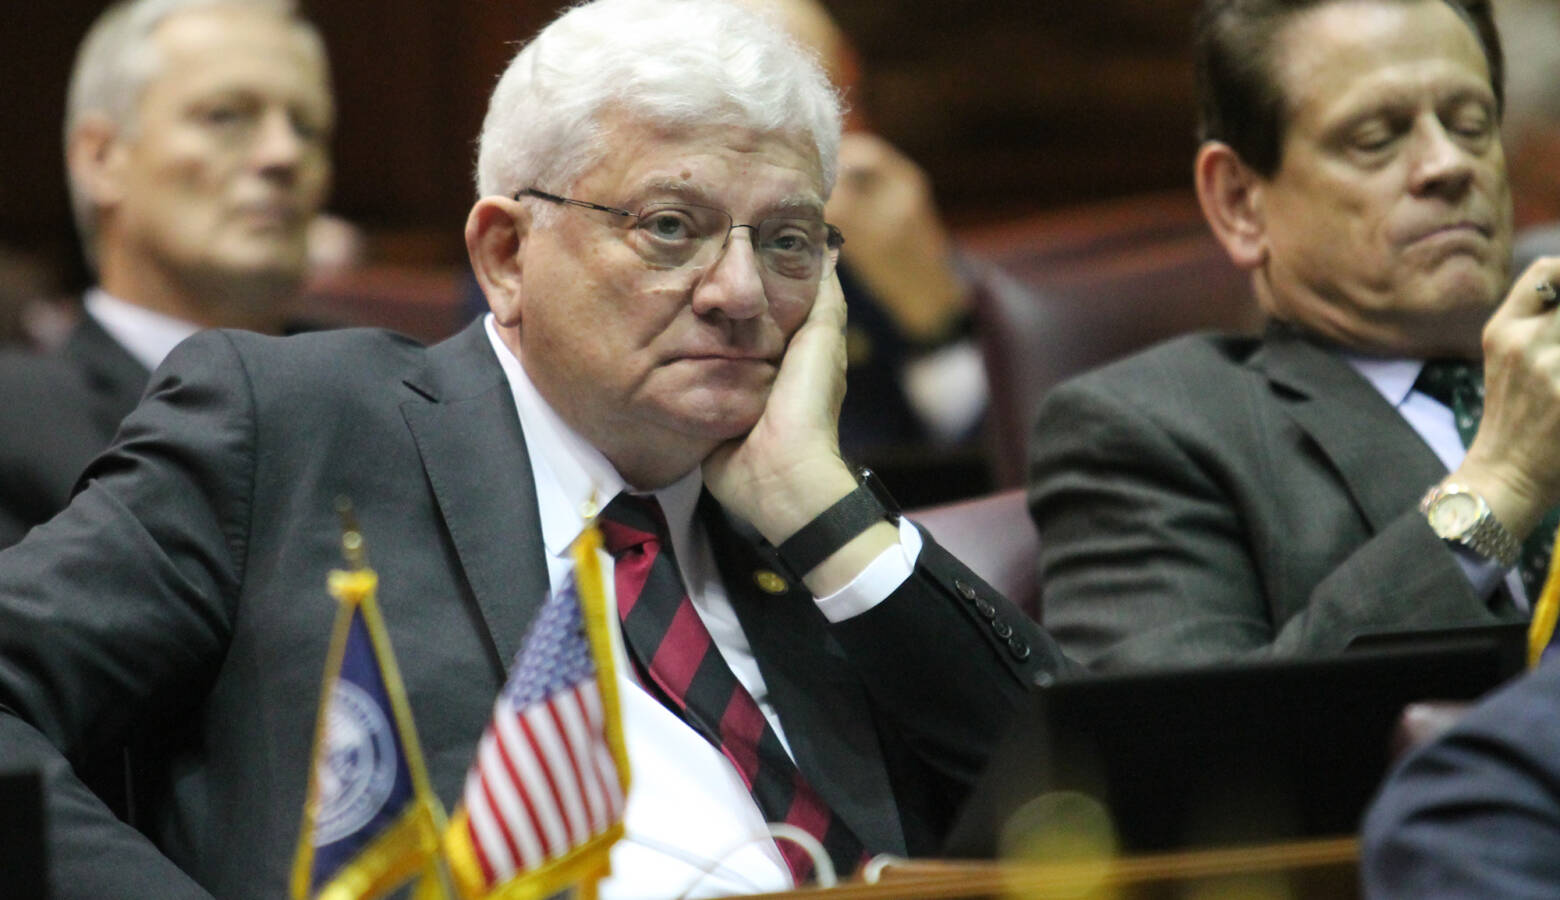 Rep. Ed Soliday (R-Valparaiso) authored the bill one year after proposing legislation that would have put renewable energy projects on hold. (Lauren Chapman/IPB News)